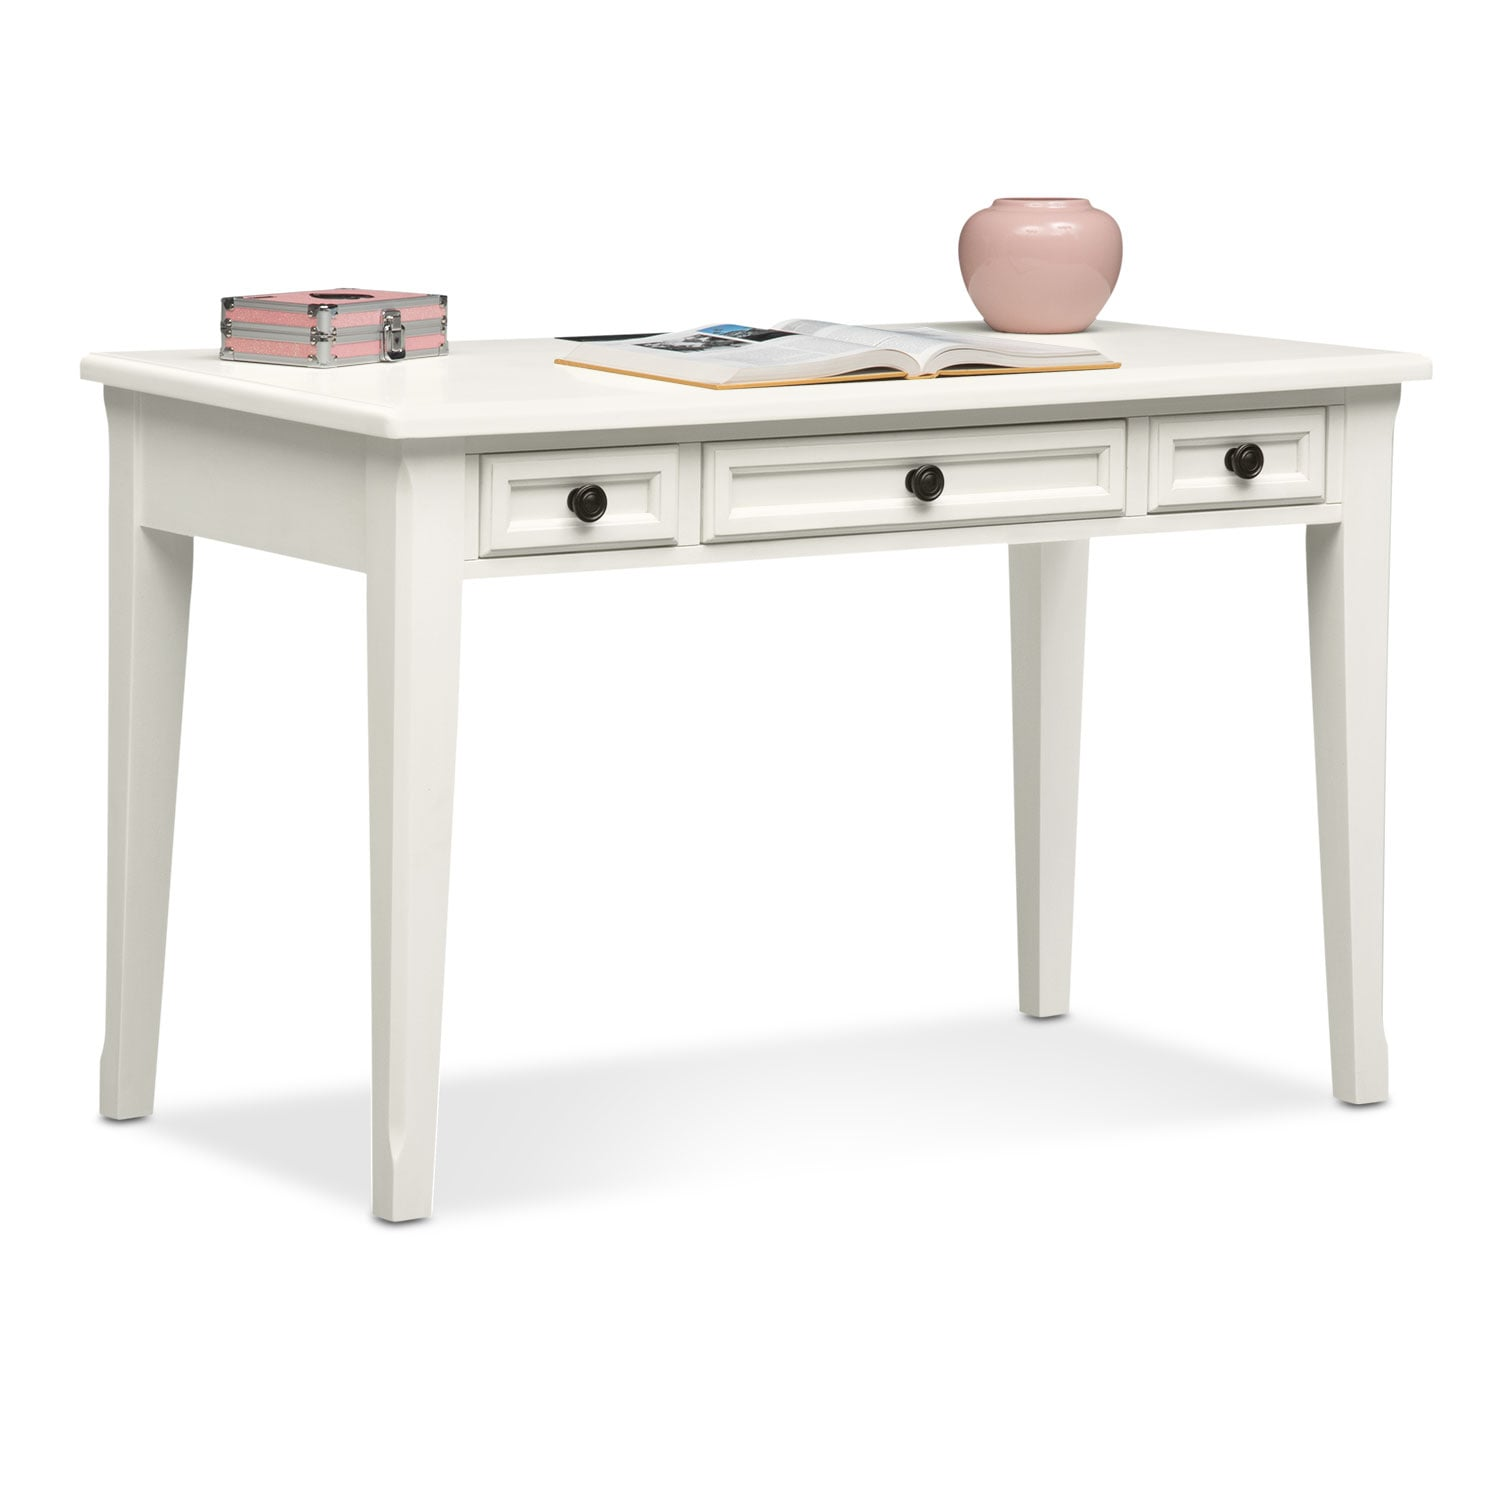 Hanover Youth Desk - White